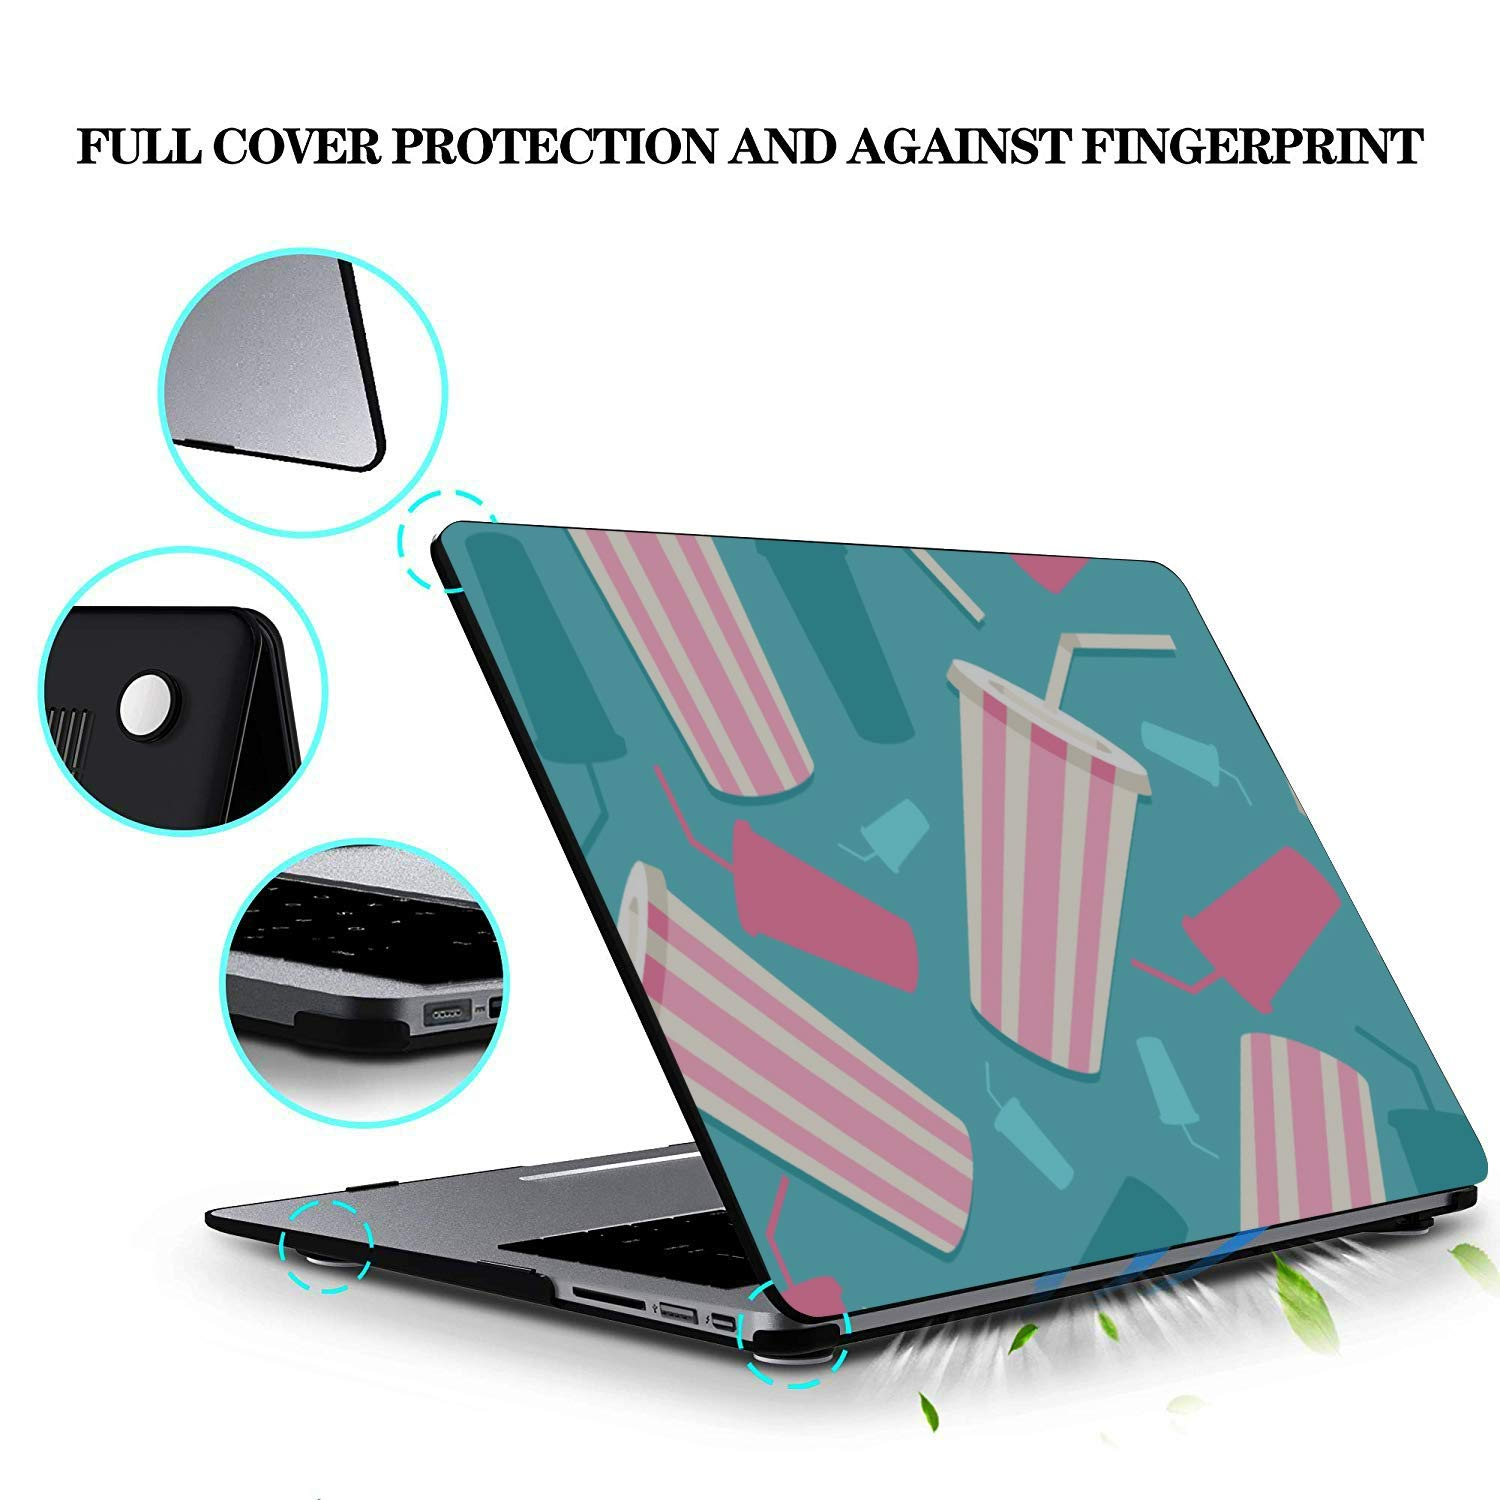 MacBook Air Case Summer Sour Sweet Drink Juice Box Plastic Hard Shell Compatible Mac Air 11 Pro 13 15 MacBook Pro Accessories Protection for MacBook 2016-2019 Version